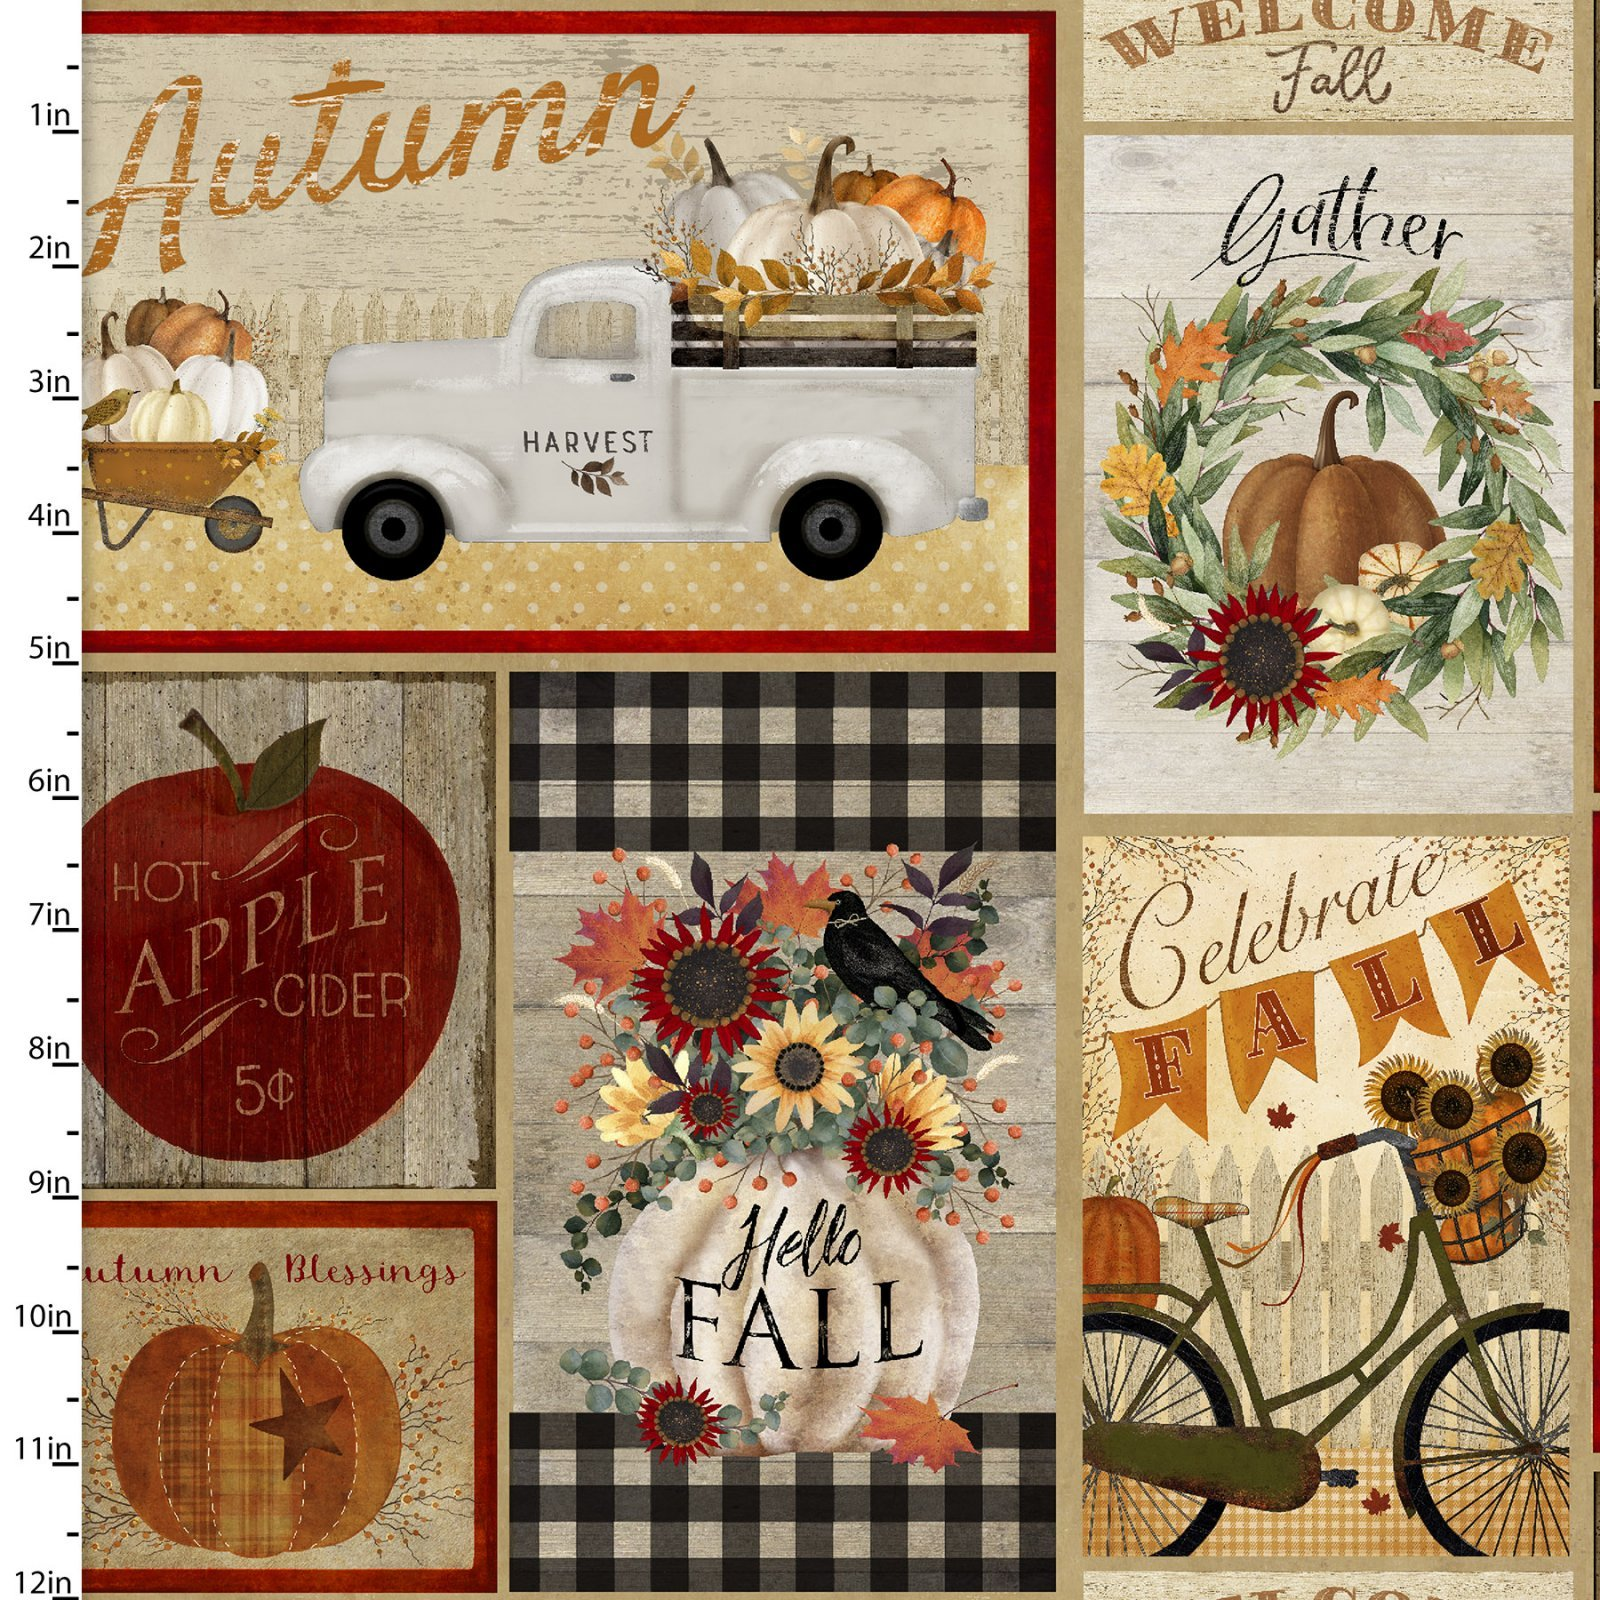 Happy Fall - Patchwork